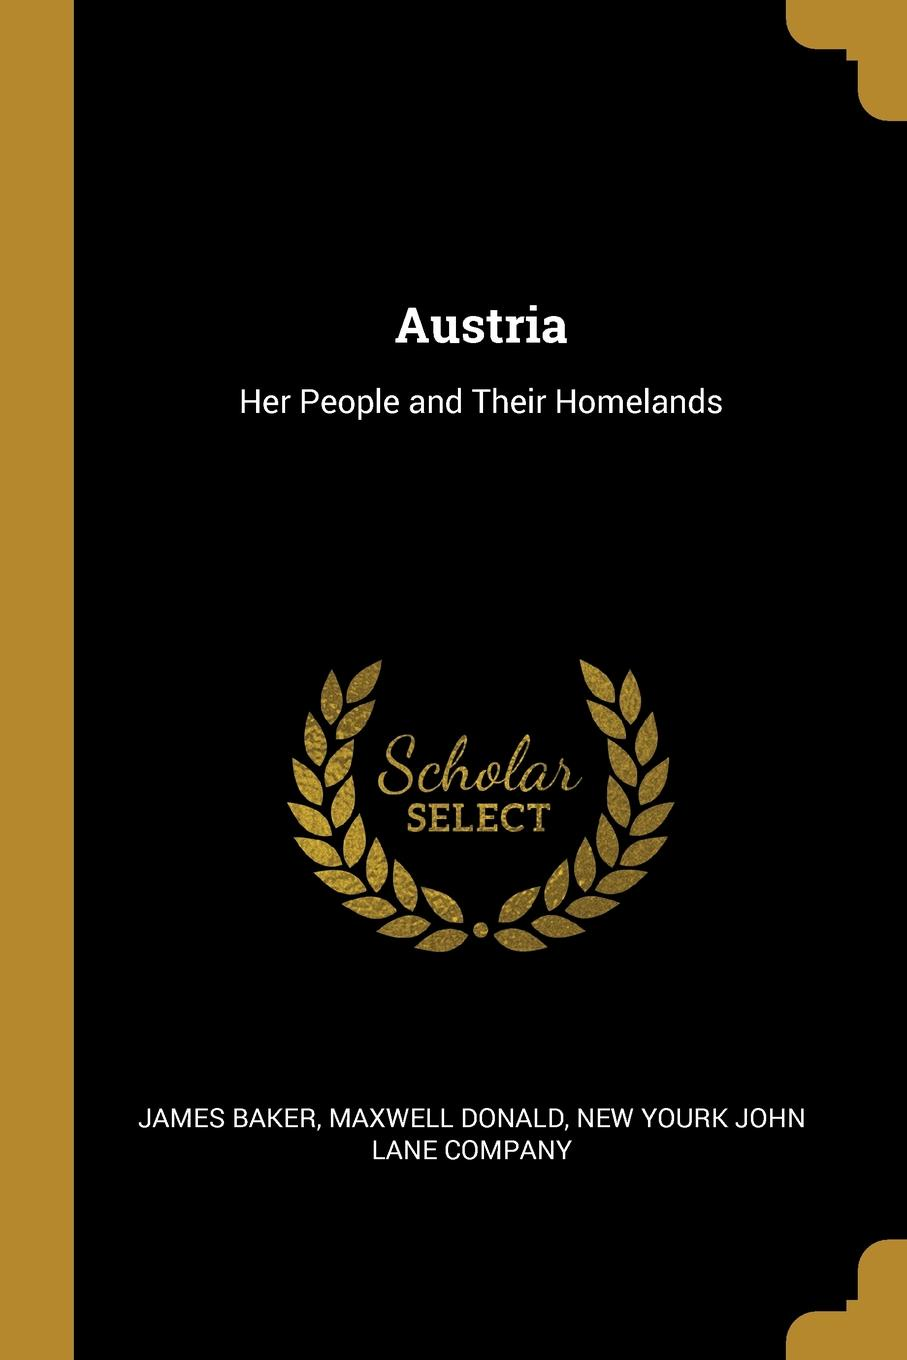 Austria. Her People and Their Homelands